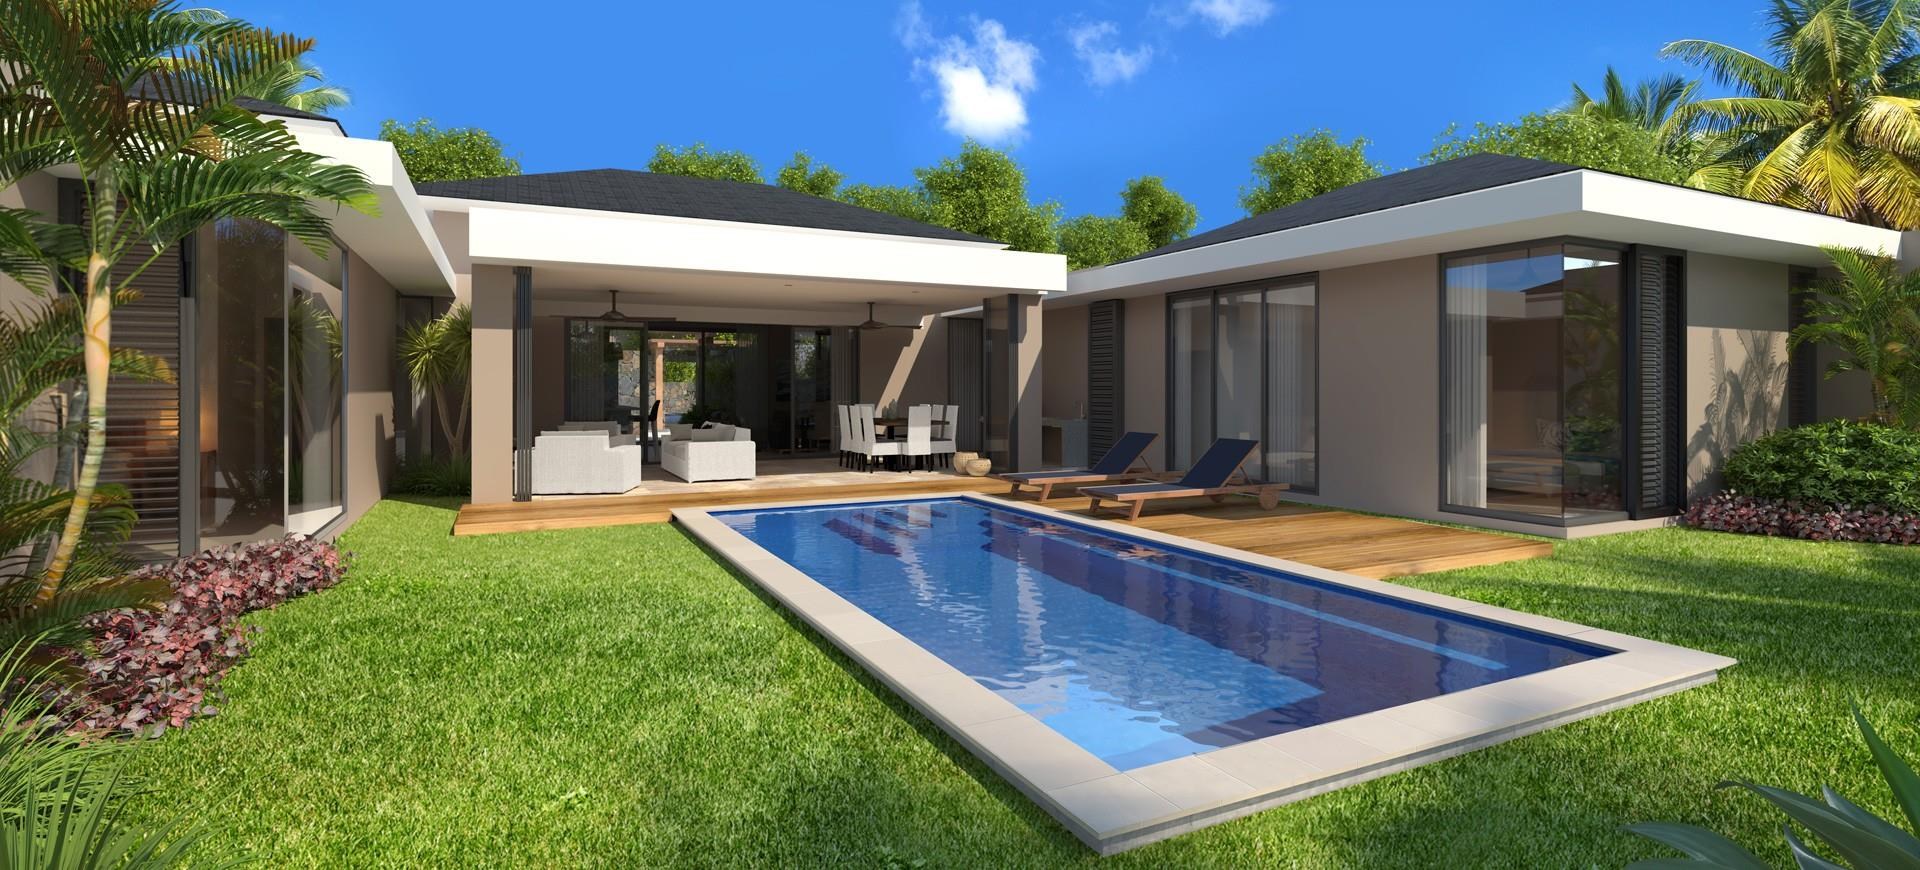 4 Bedroom House For Sale in Pereybere